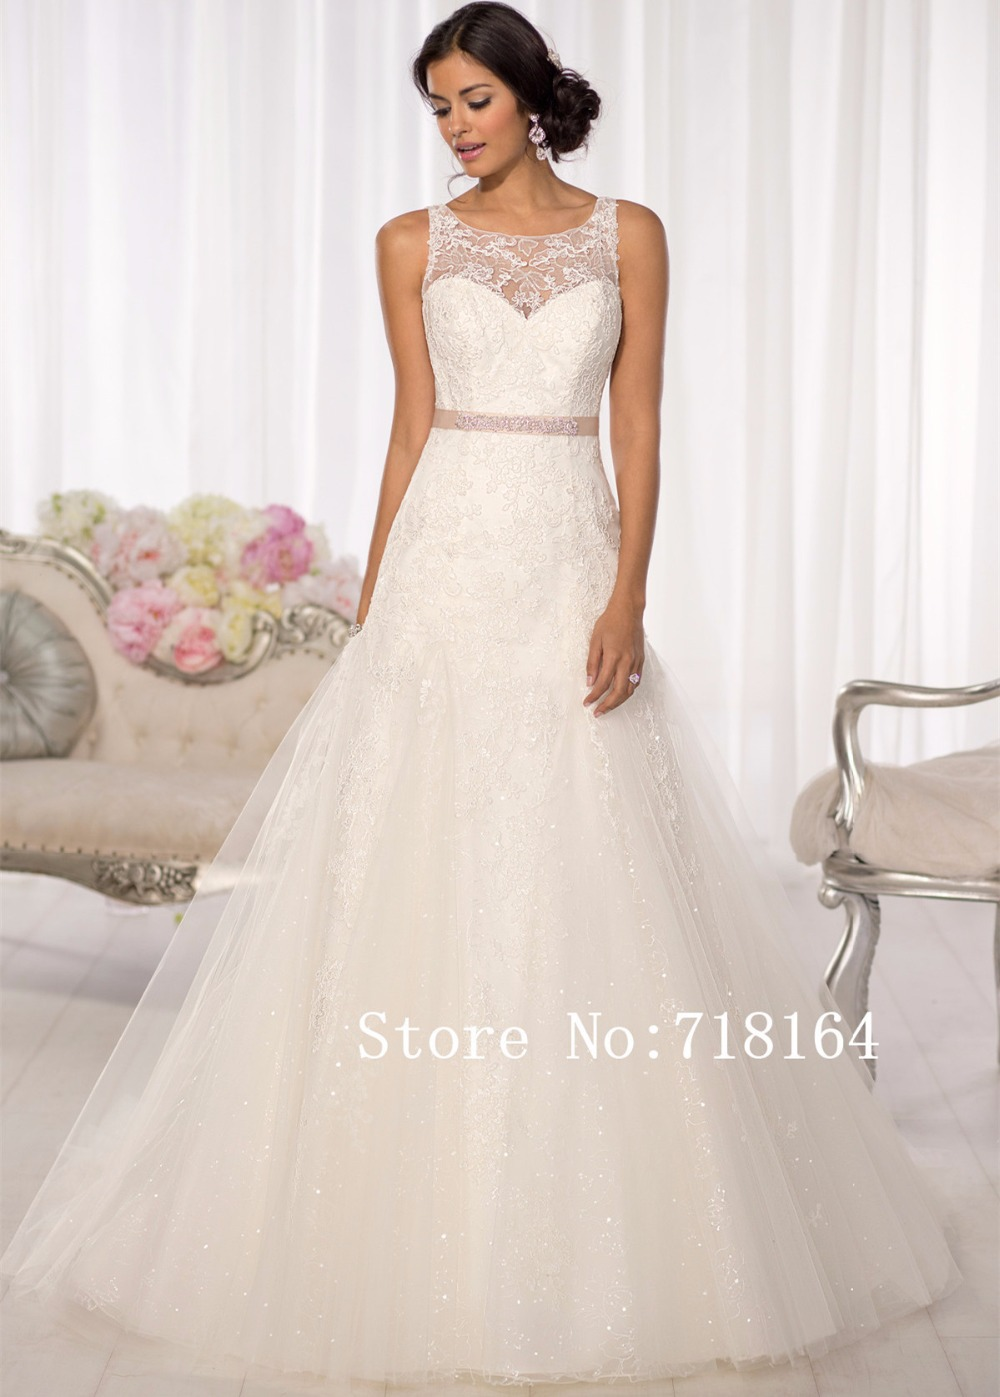 Buy Classical Lace Mermaid Wedding Dress